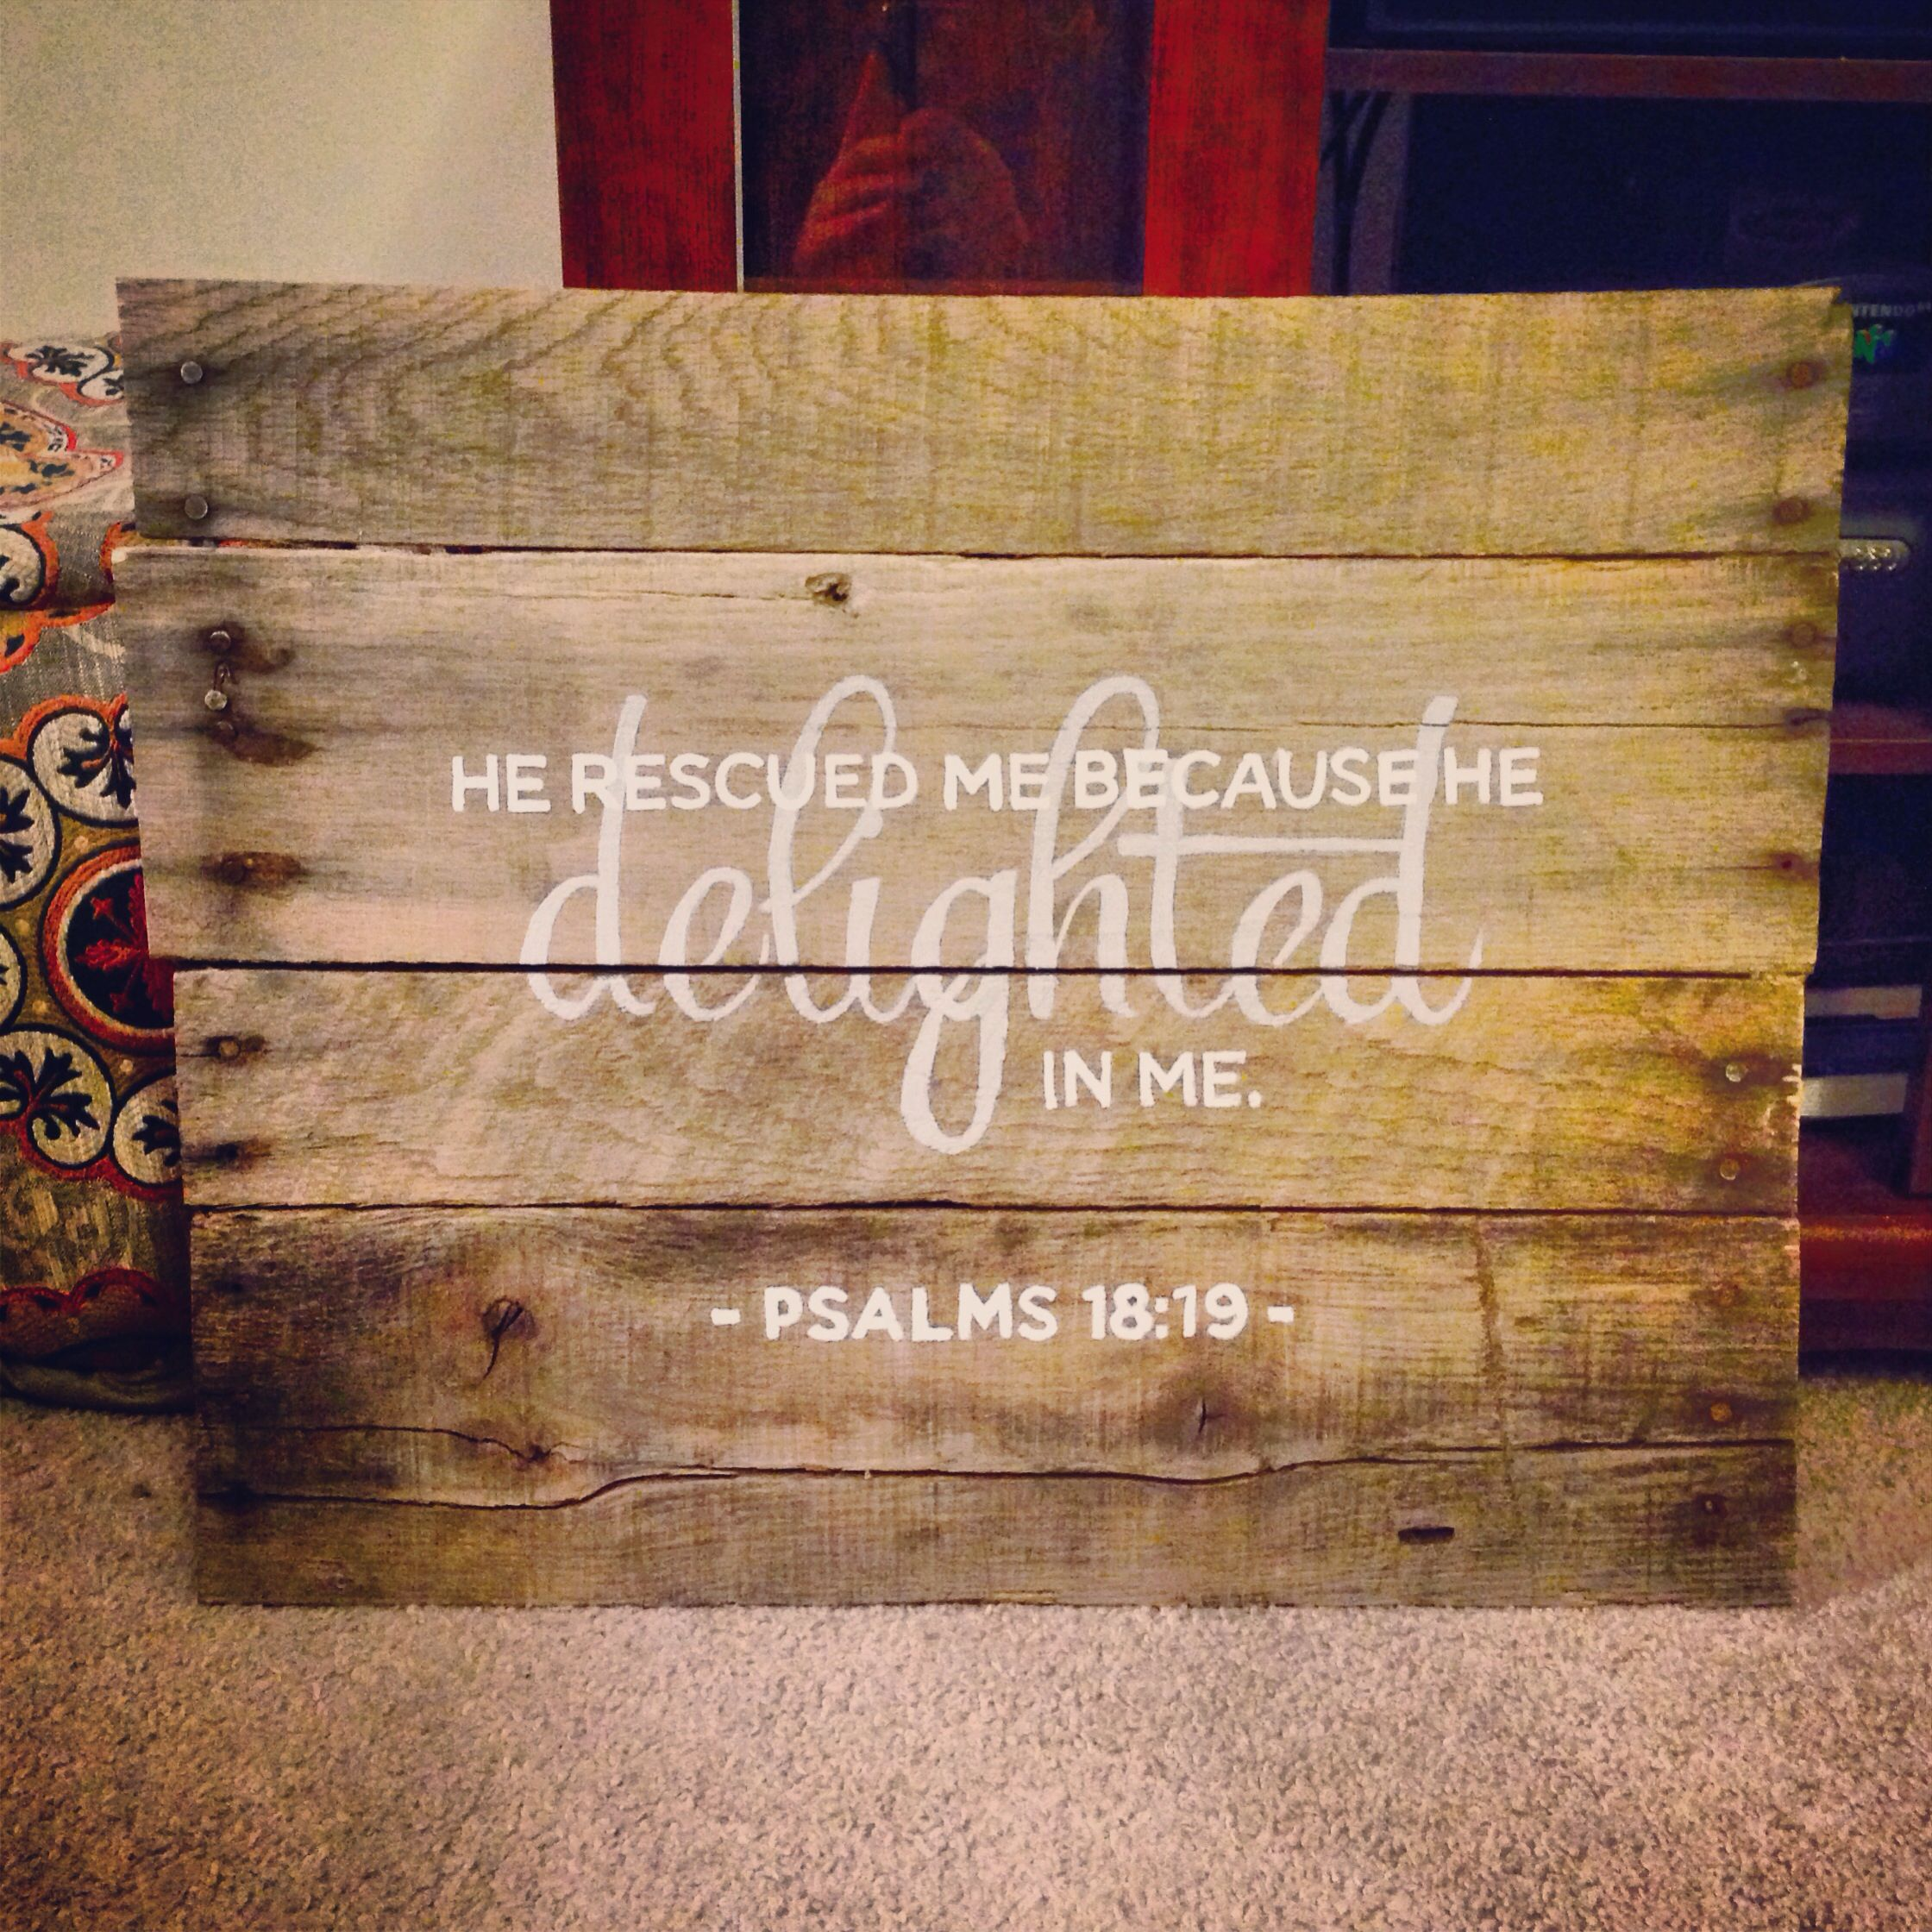 """""""He rescued me because He delighted in me.""""-Psalms 18:19. Newest hand-painted sign! #diy #erinsikesdesign #faith #palletwood #handpainted #psalms"""